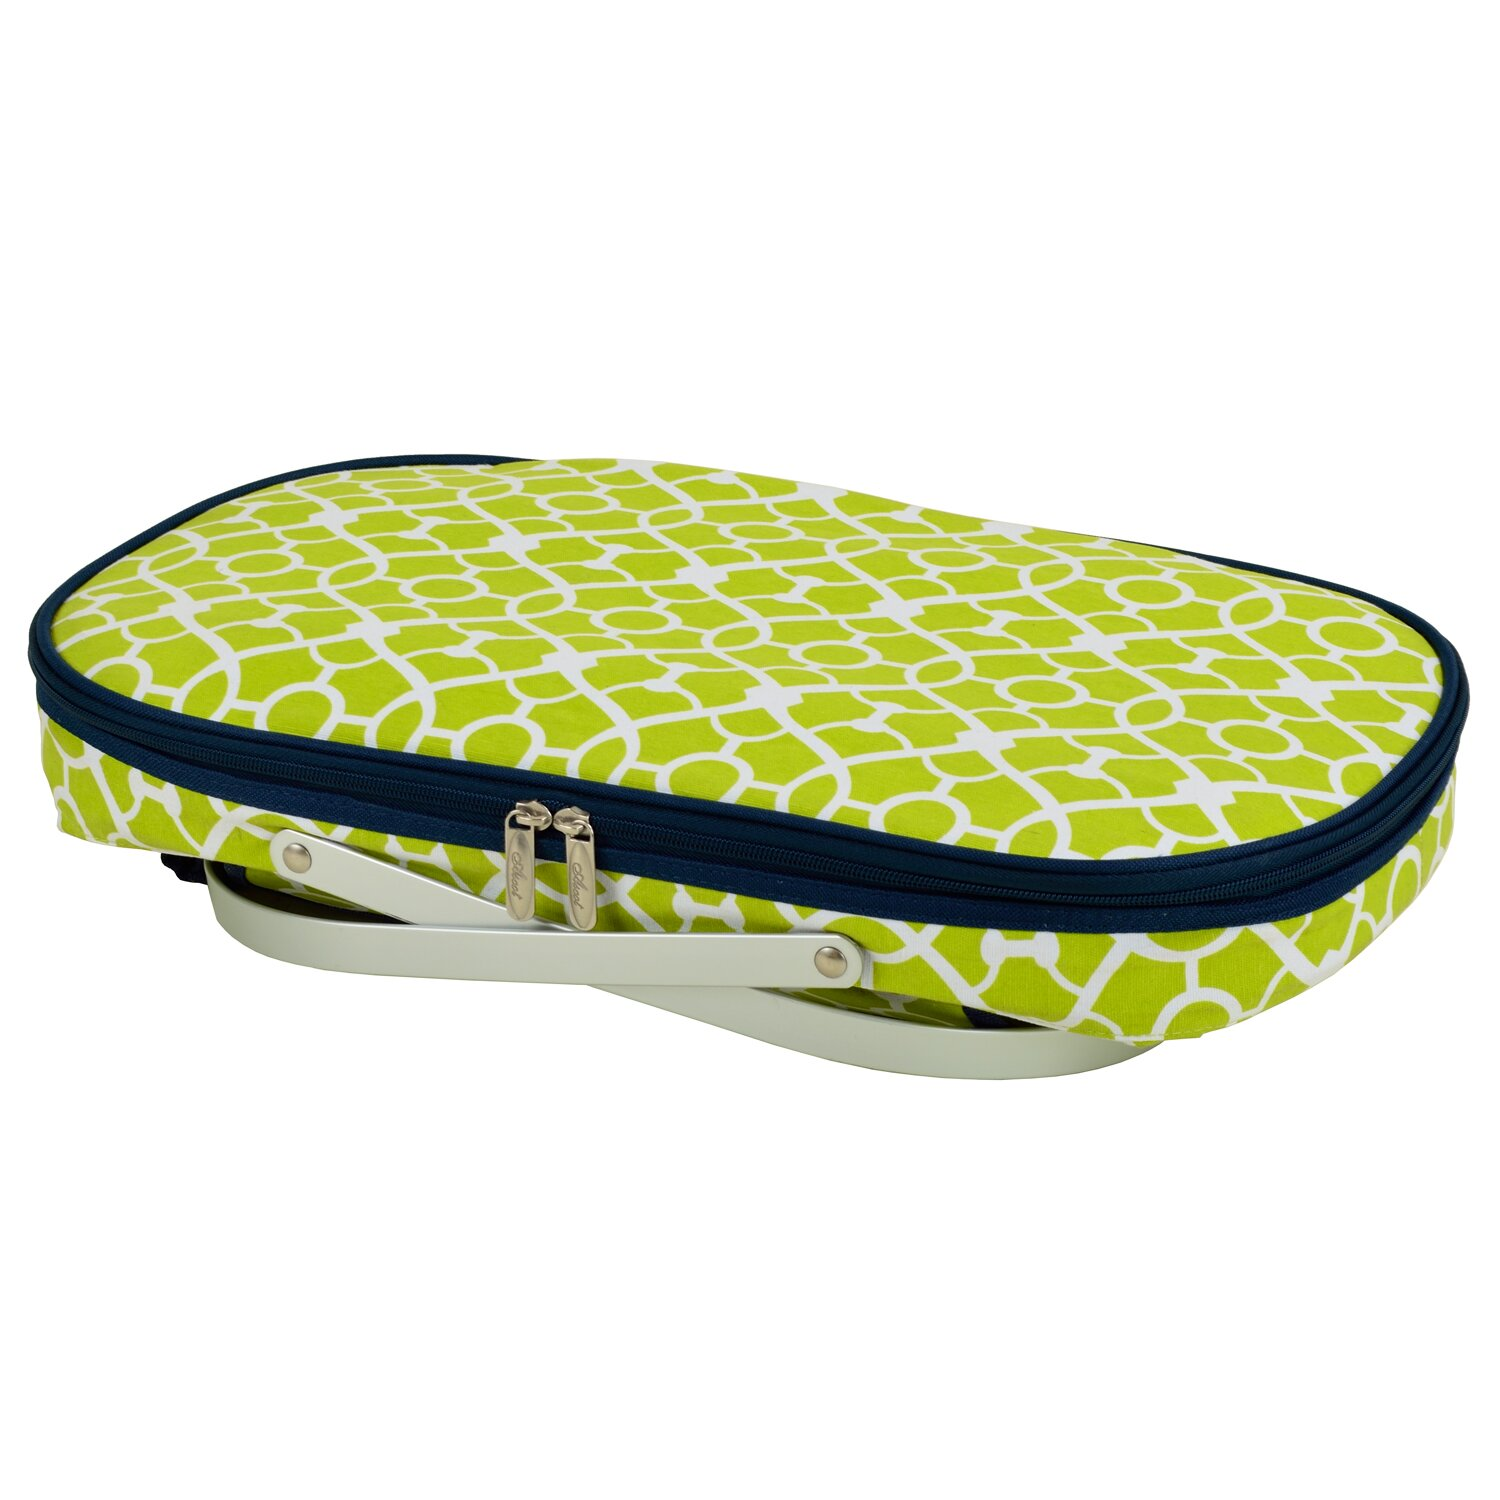 Picnic At Ascot Collapsible Insulated Picnic Basket : Picnic at ascot trellis collapsible insulated basket